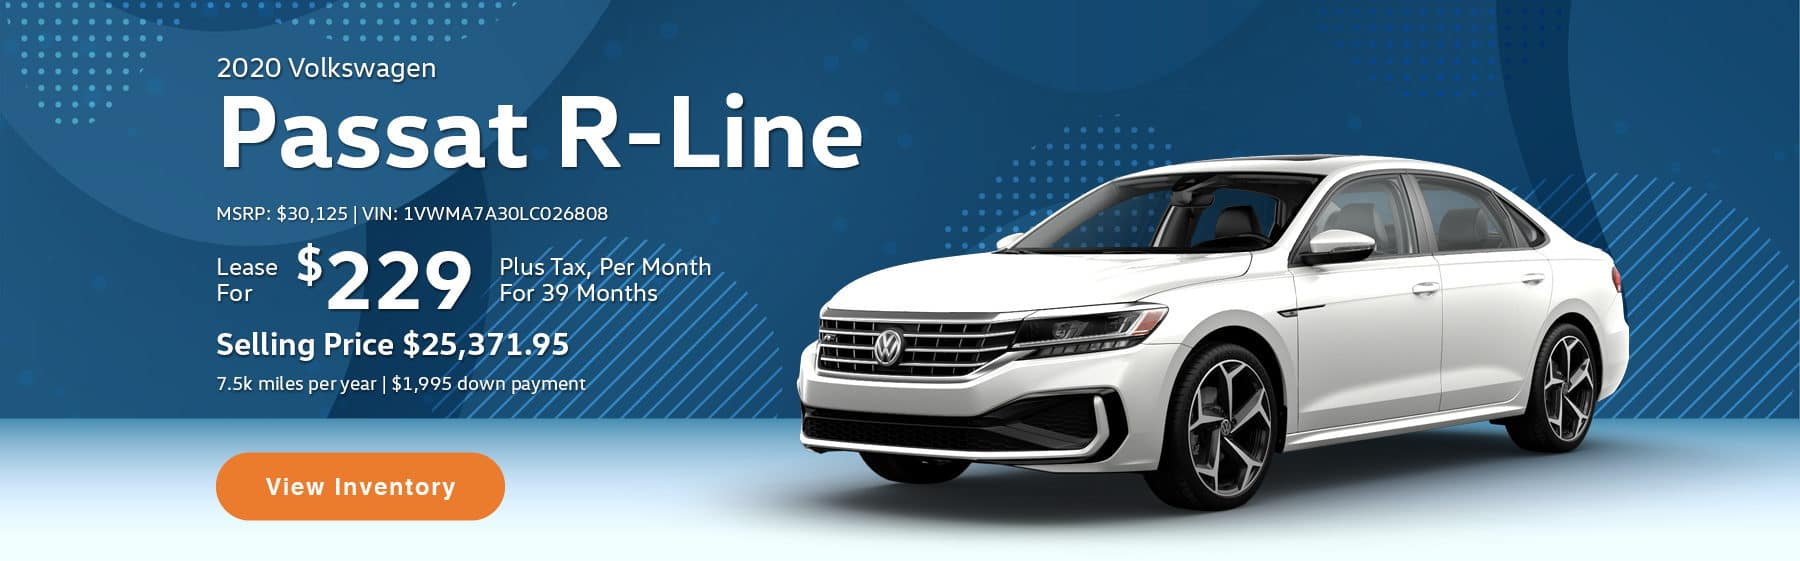 Lease the 2020 Passat R-Line for $229 per month, plus tax for 39 months.